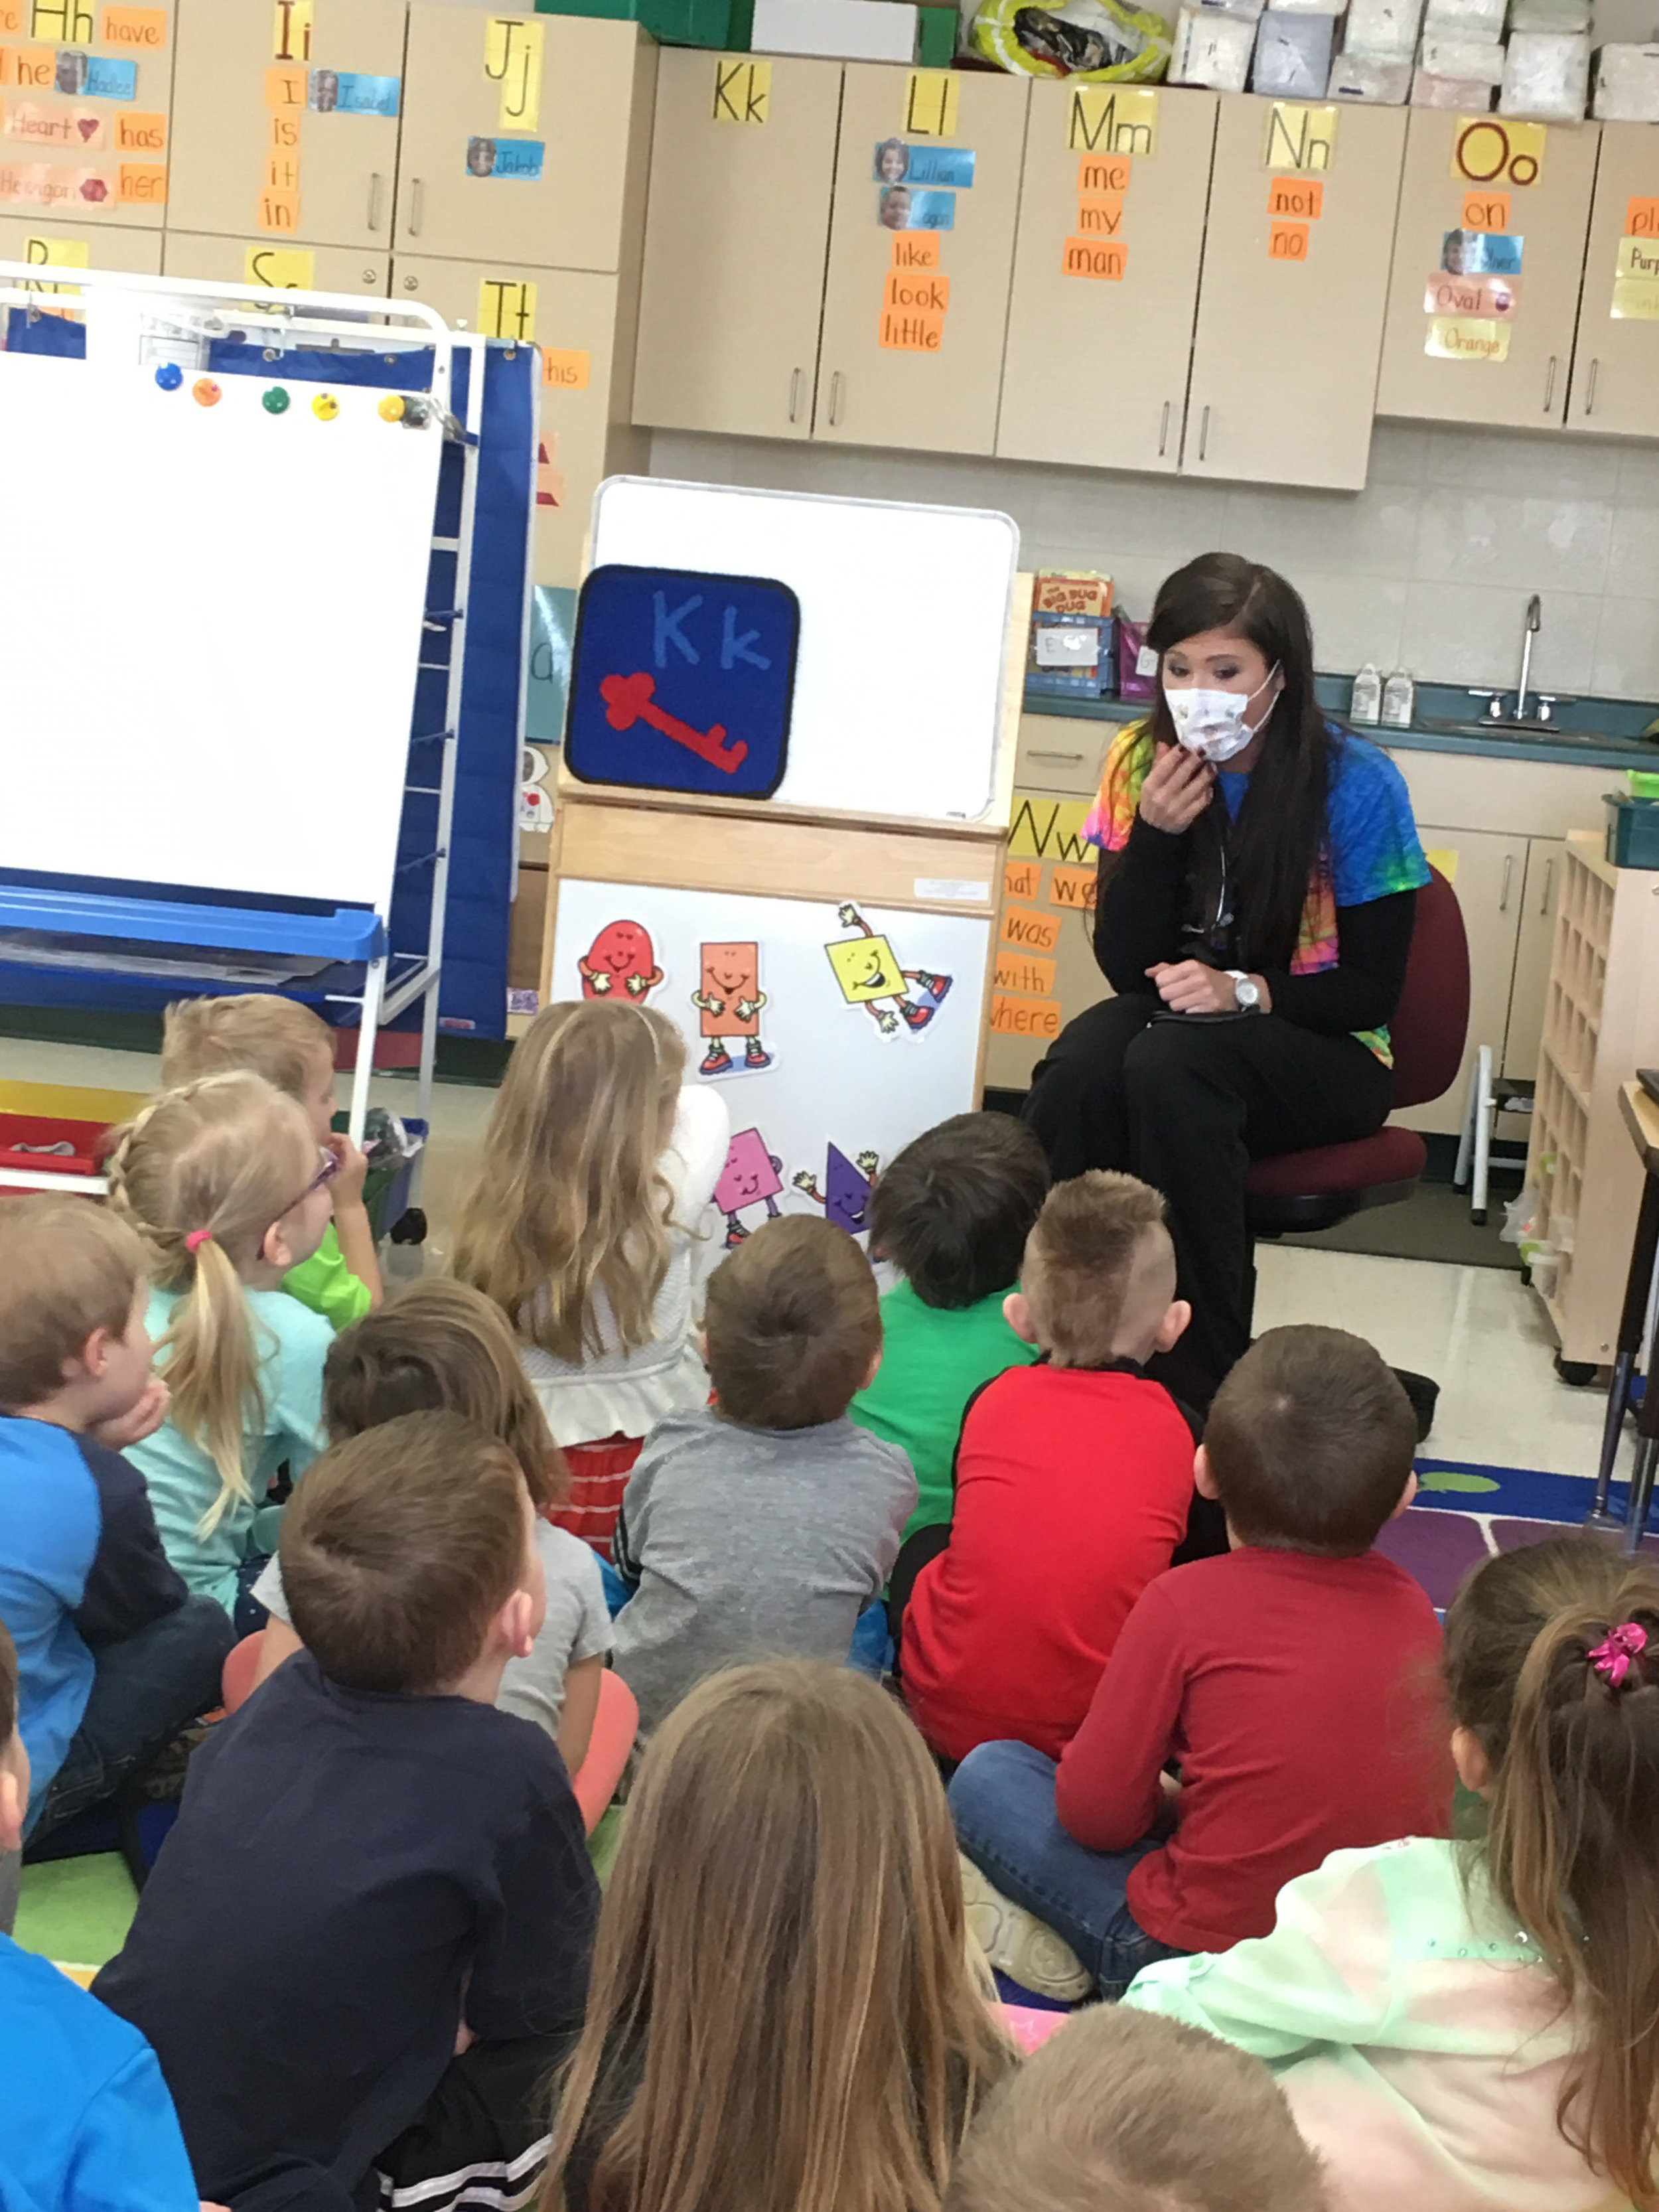 My sister, Samantha, came in to teach the students about being a nurse.